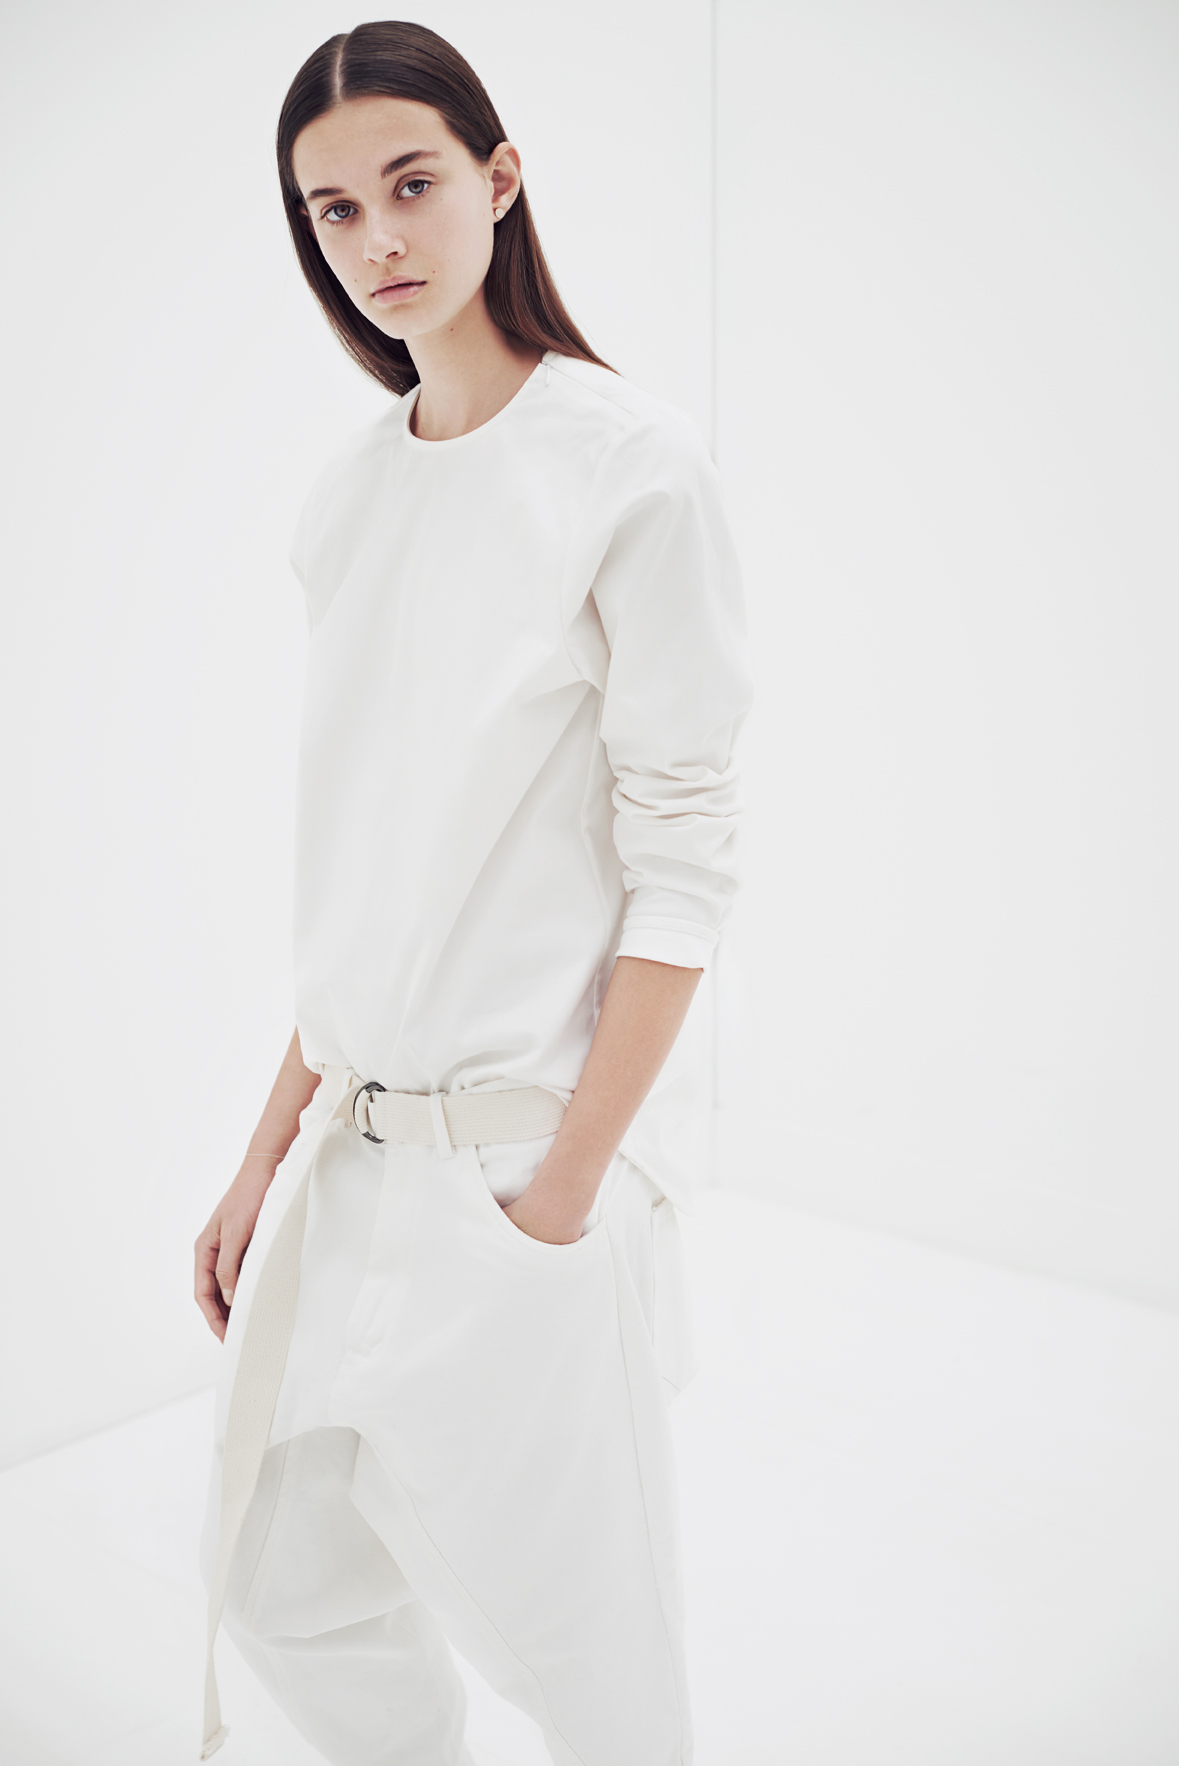 Undyed: bassike goes all-natural for AW15